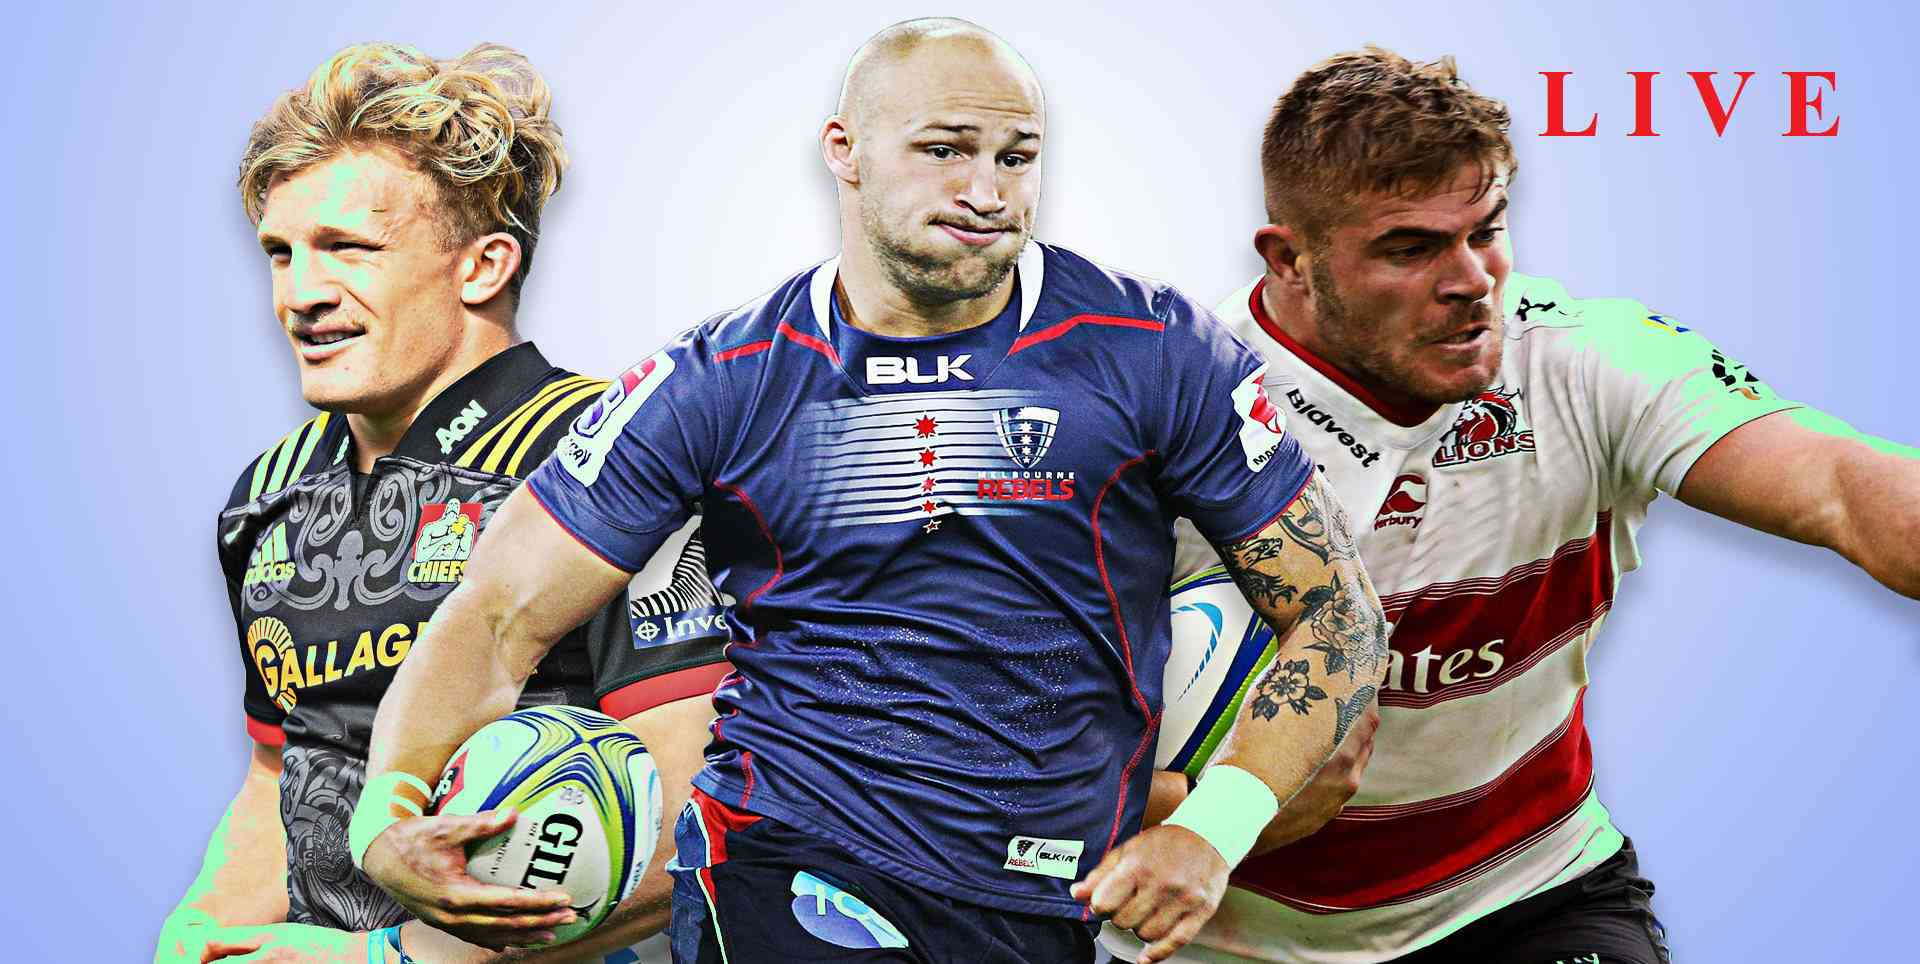 Ulster vs Scarlets 2016 Live Streaming